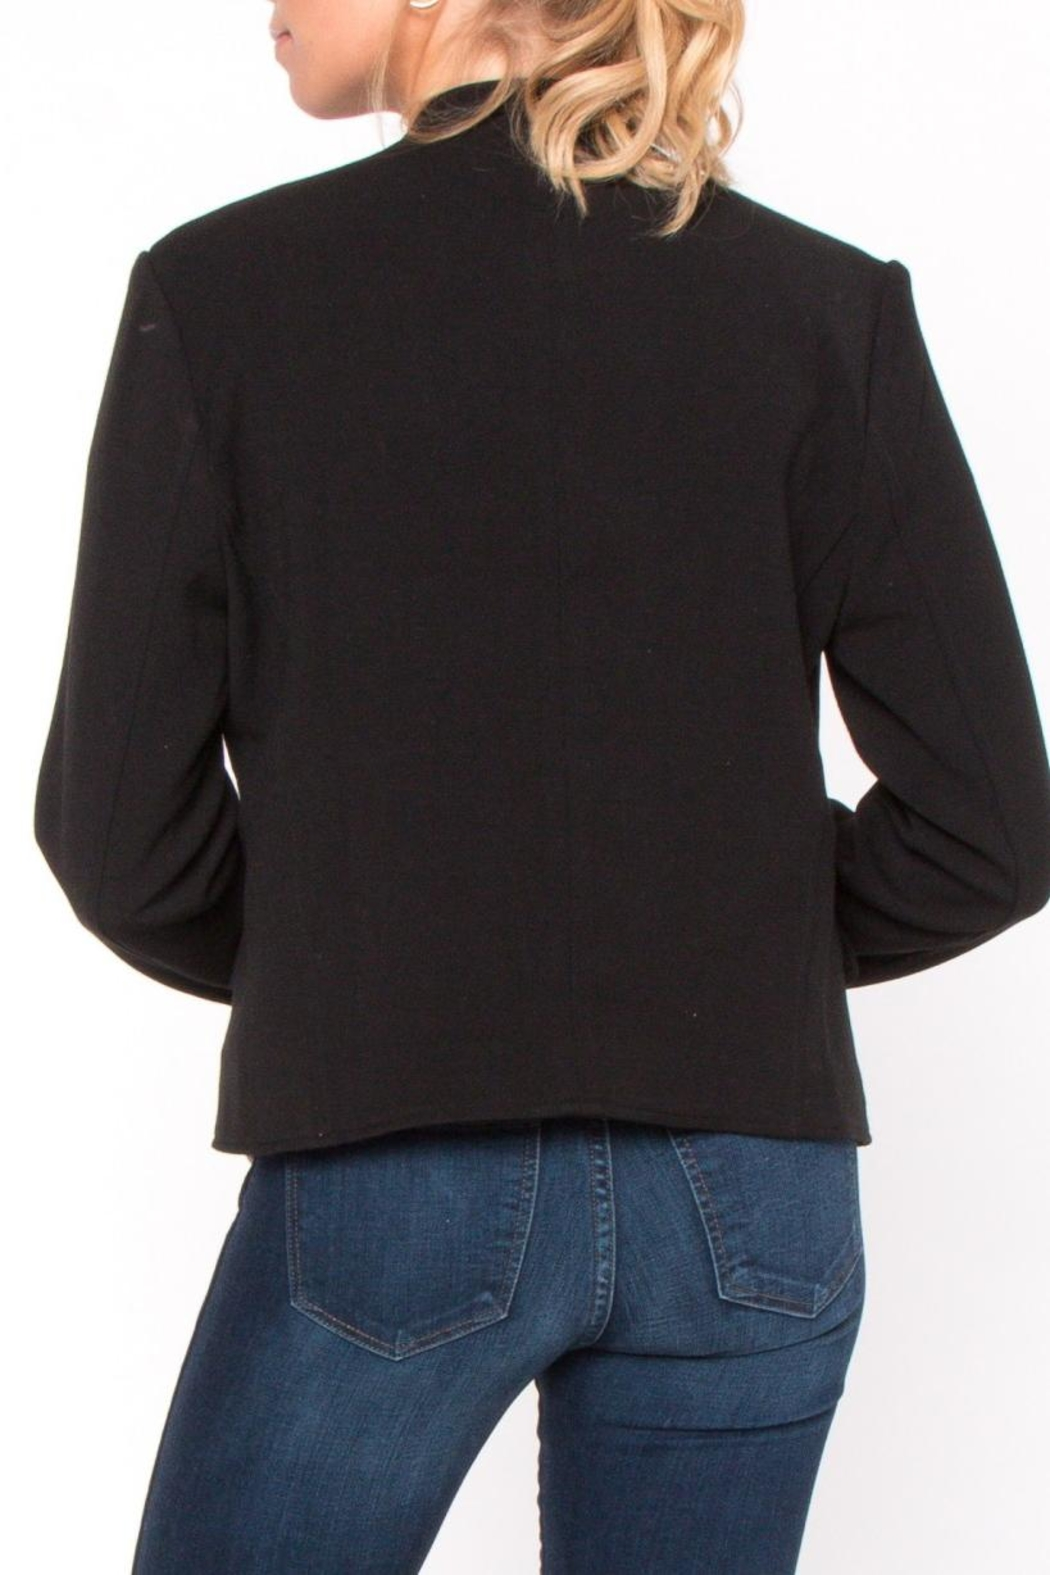 Everly Embroidered Button Jacket - Side Cropped Image